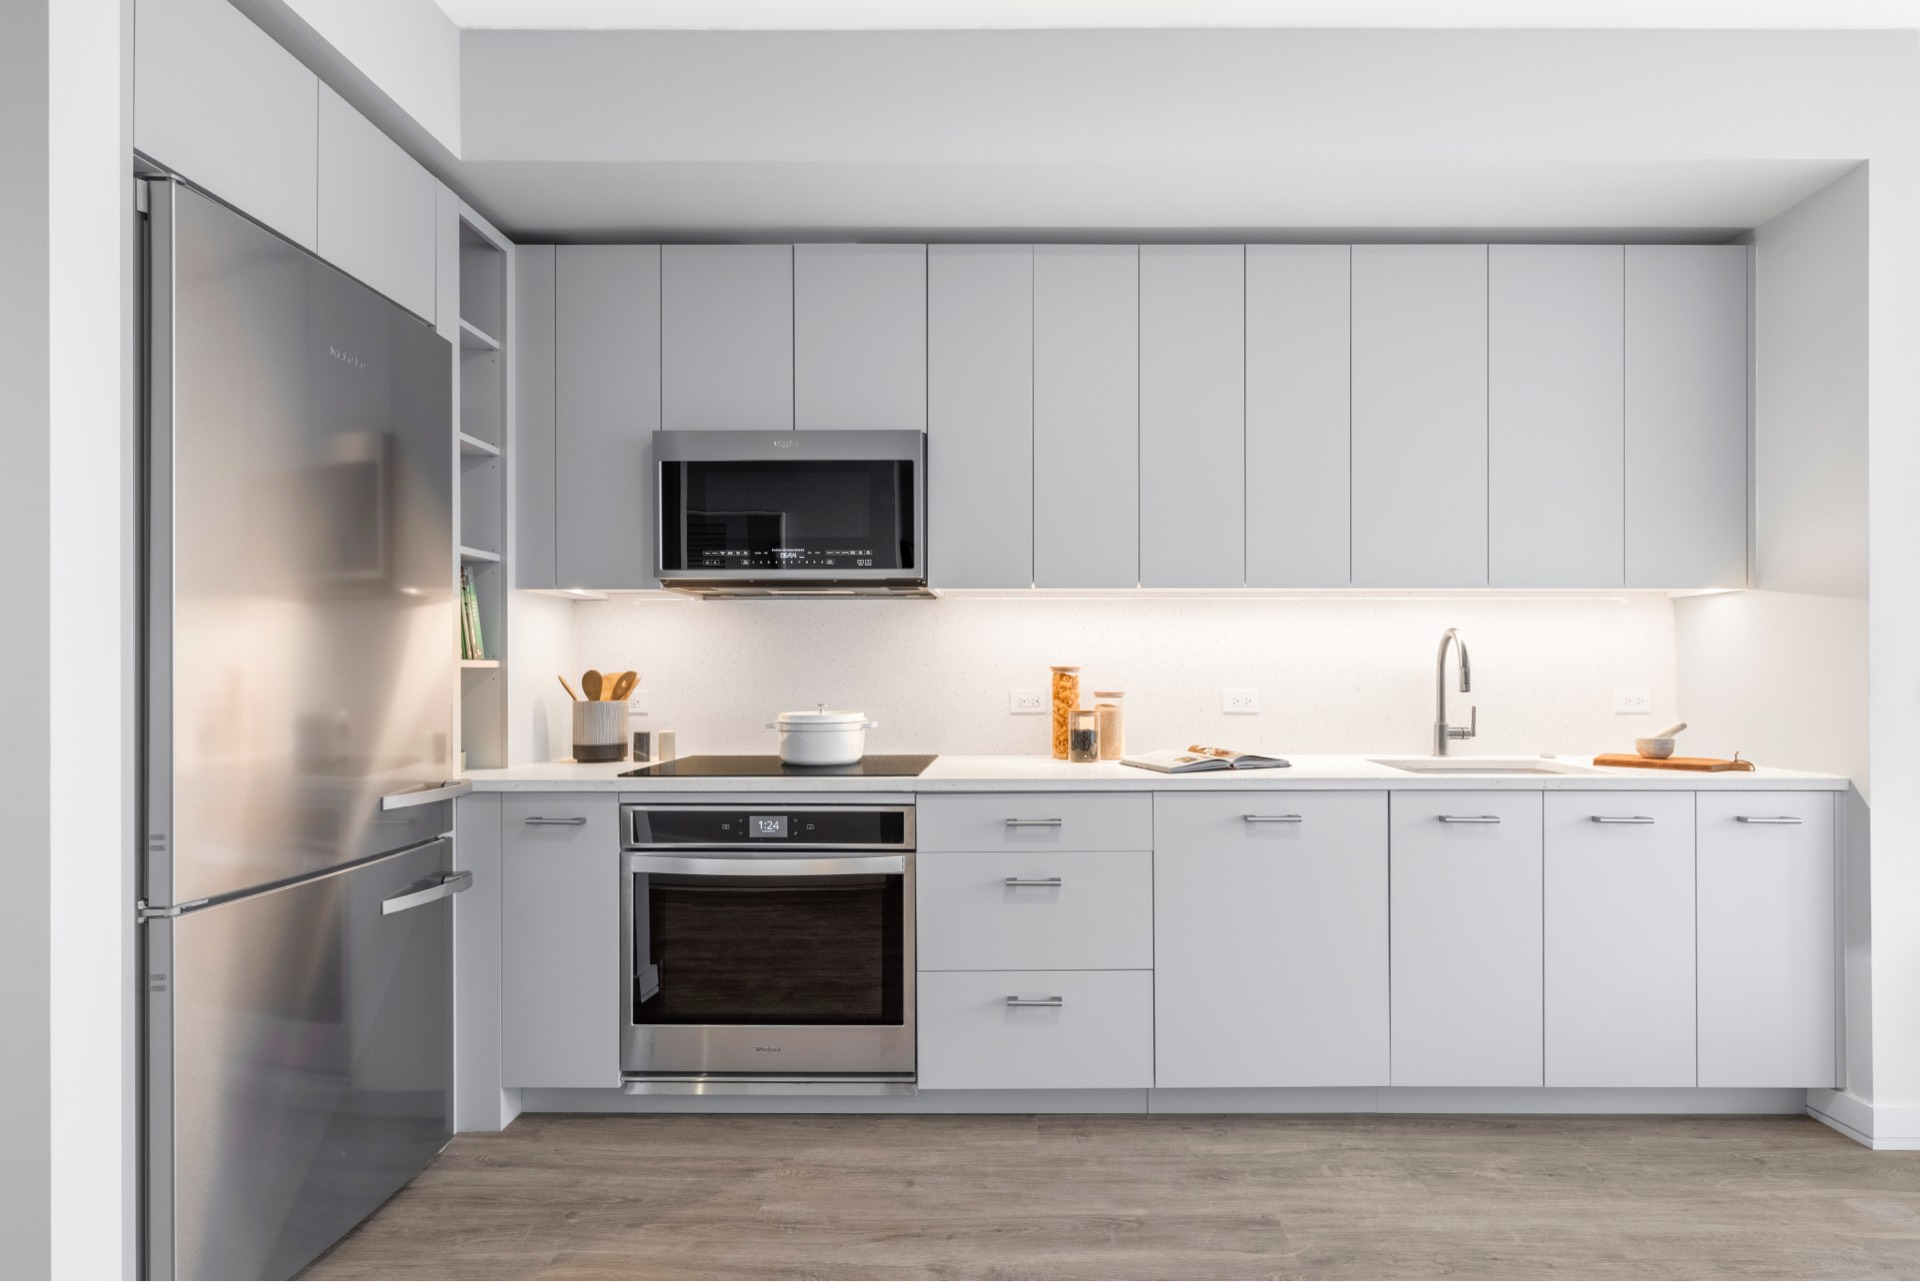 Meticulously designed kitchens featuring a custom trash and recycling drawer